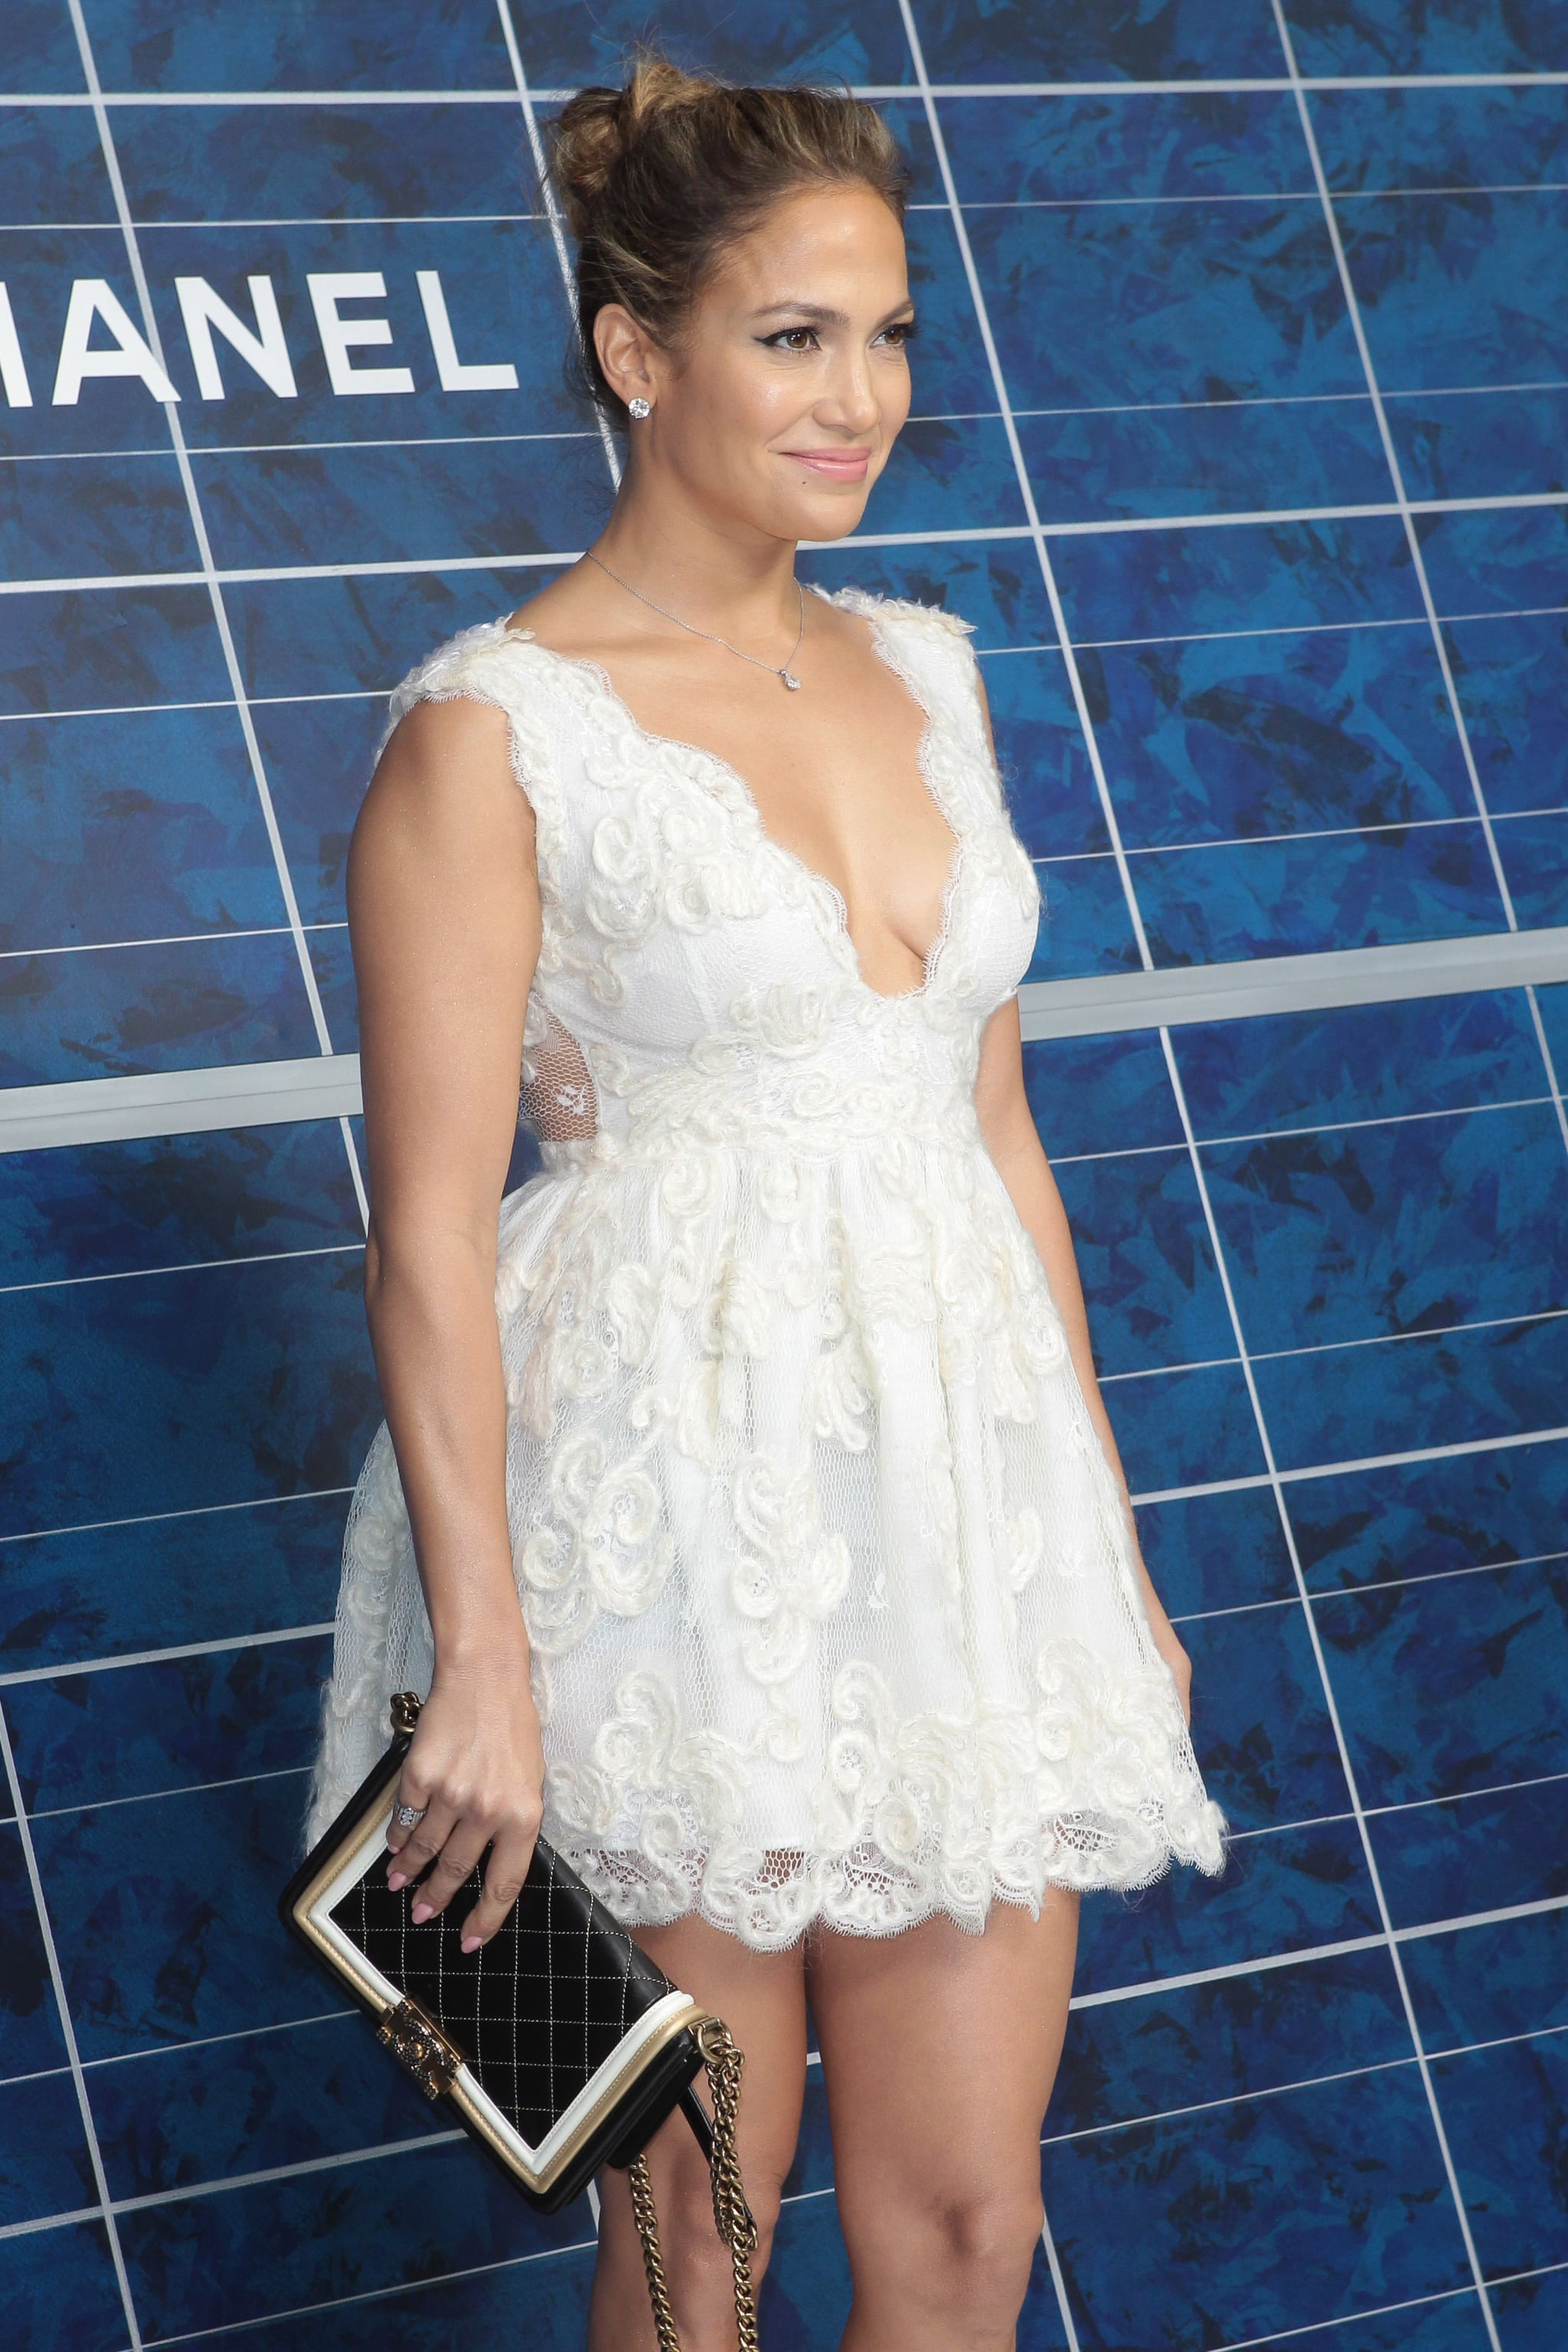 Jennifer Lopez posed in a white lace dress during Chanel's photocall for Paris Fashion Week.